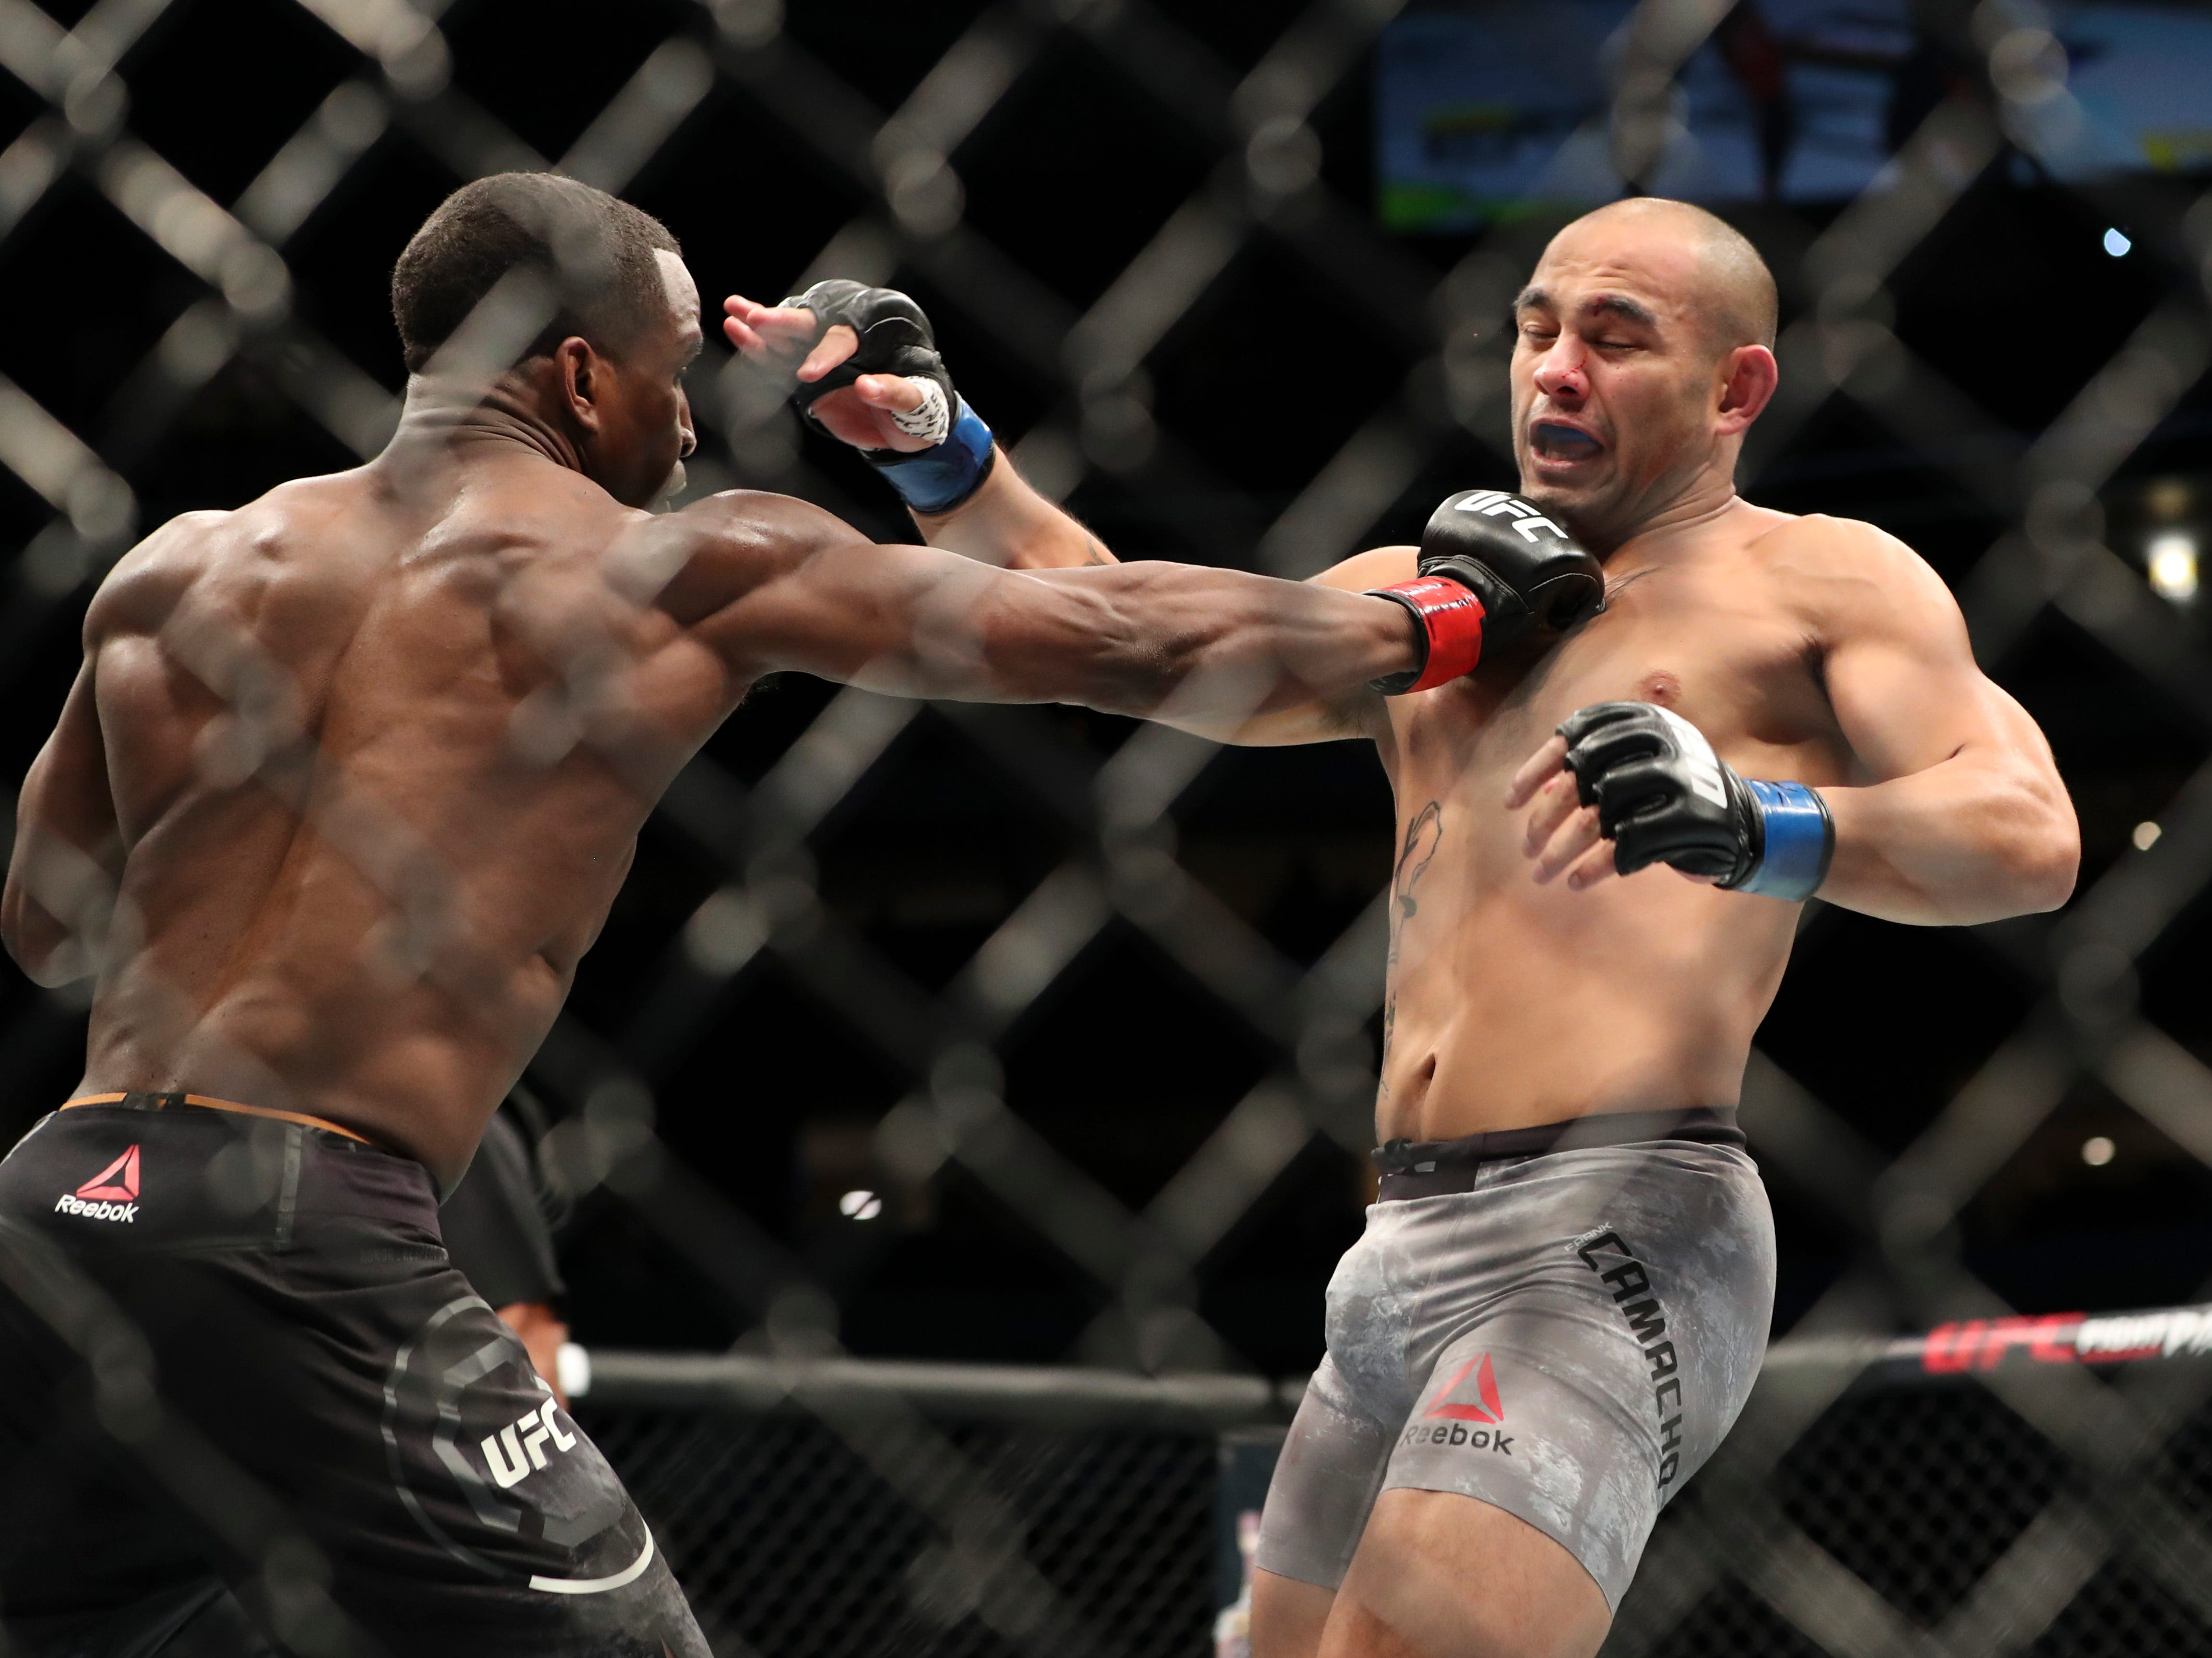 Geoff Neal (red gloves) fights Frank Camacho (blue gloves) during UFC 228 at American Airlines Center.